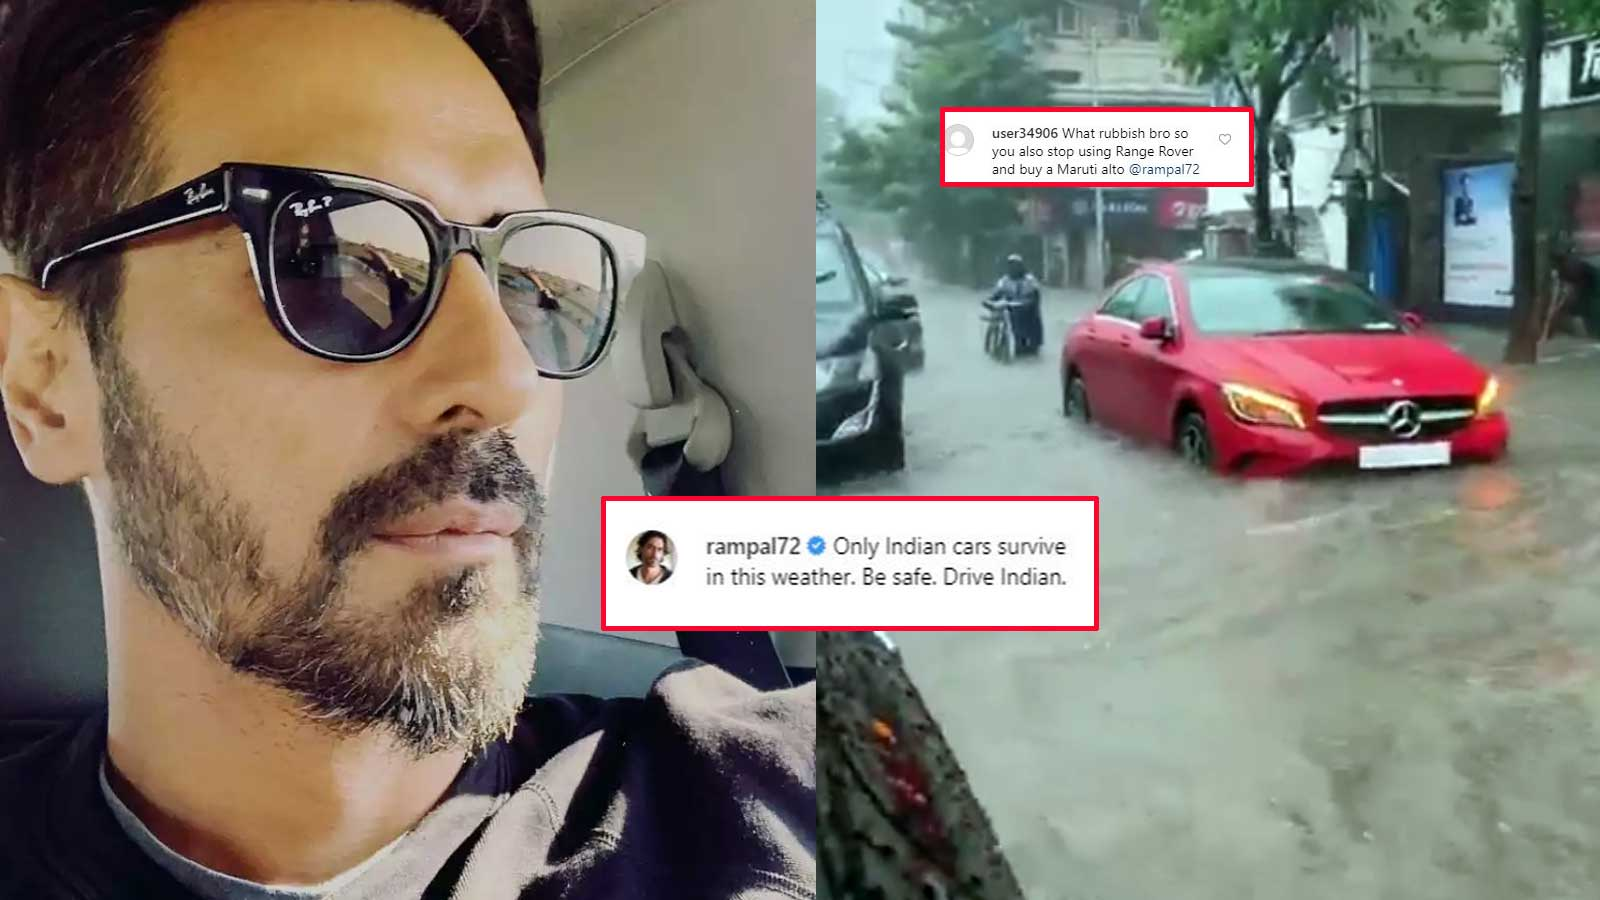 Arjun Rampal gives it back to a troll who suggests the actor is using a  foreign car to film Mumbai rains